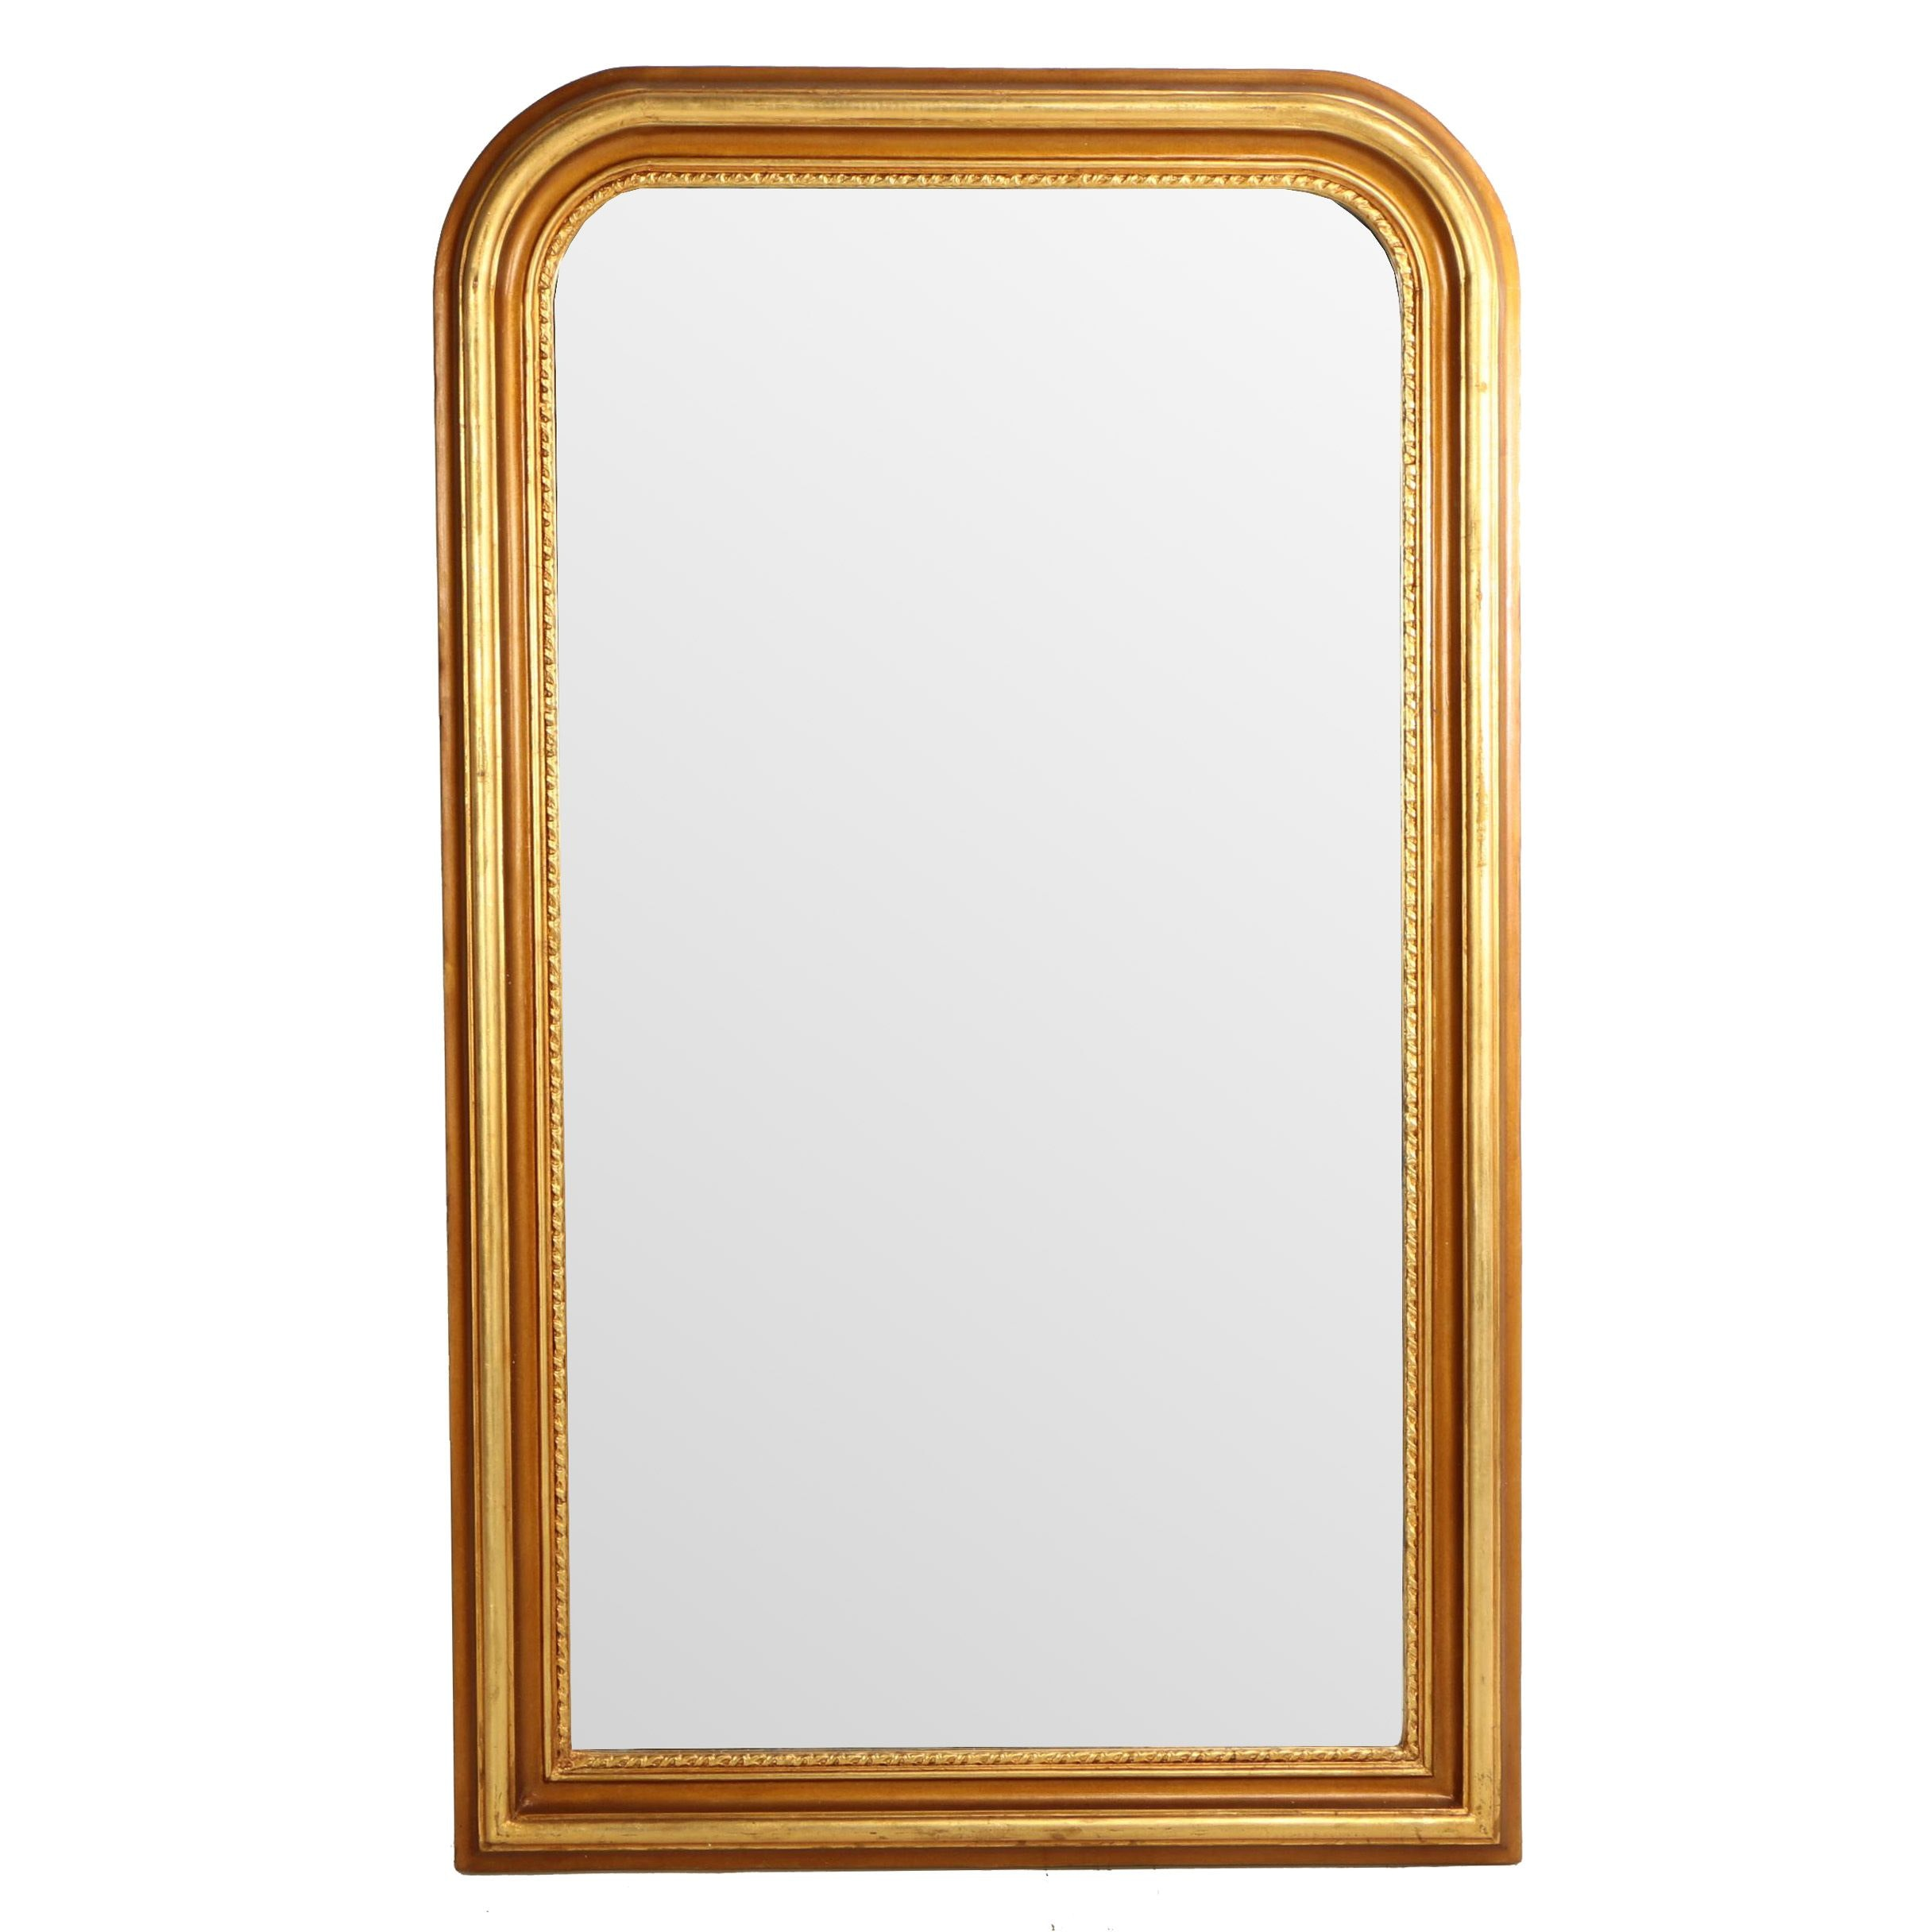 """French Provincial Style """"Louis Phillipe"""" Giltwood Beveled Wall Mirror"""